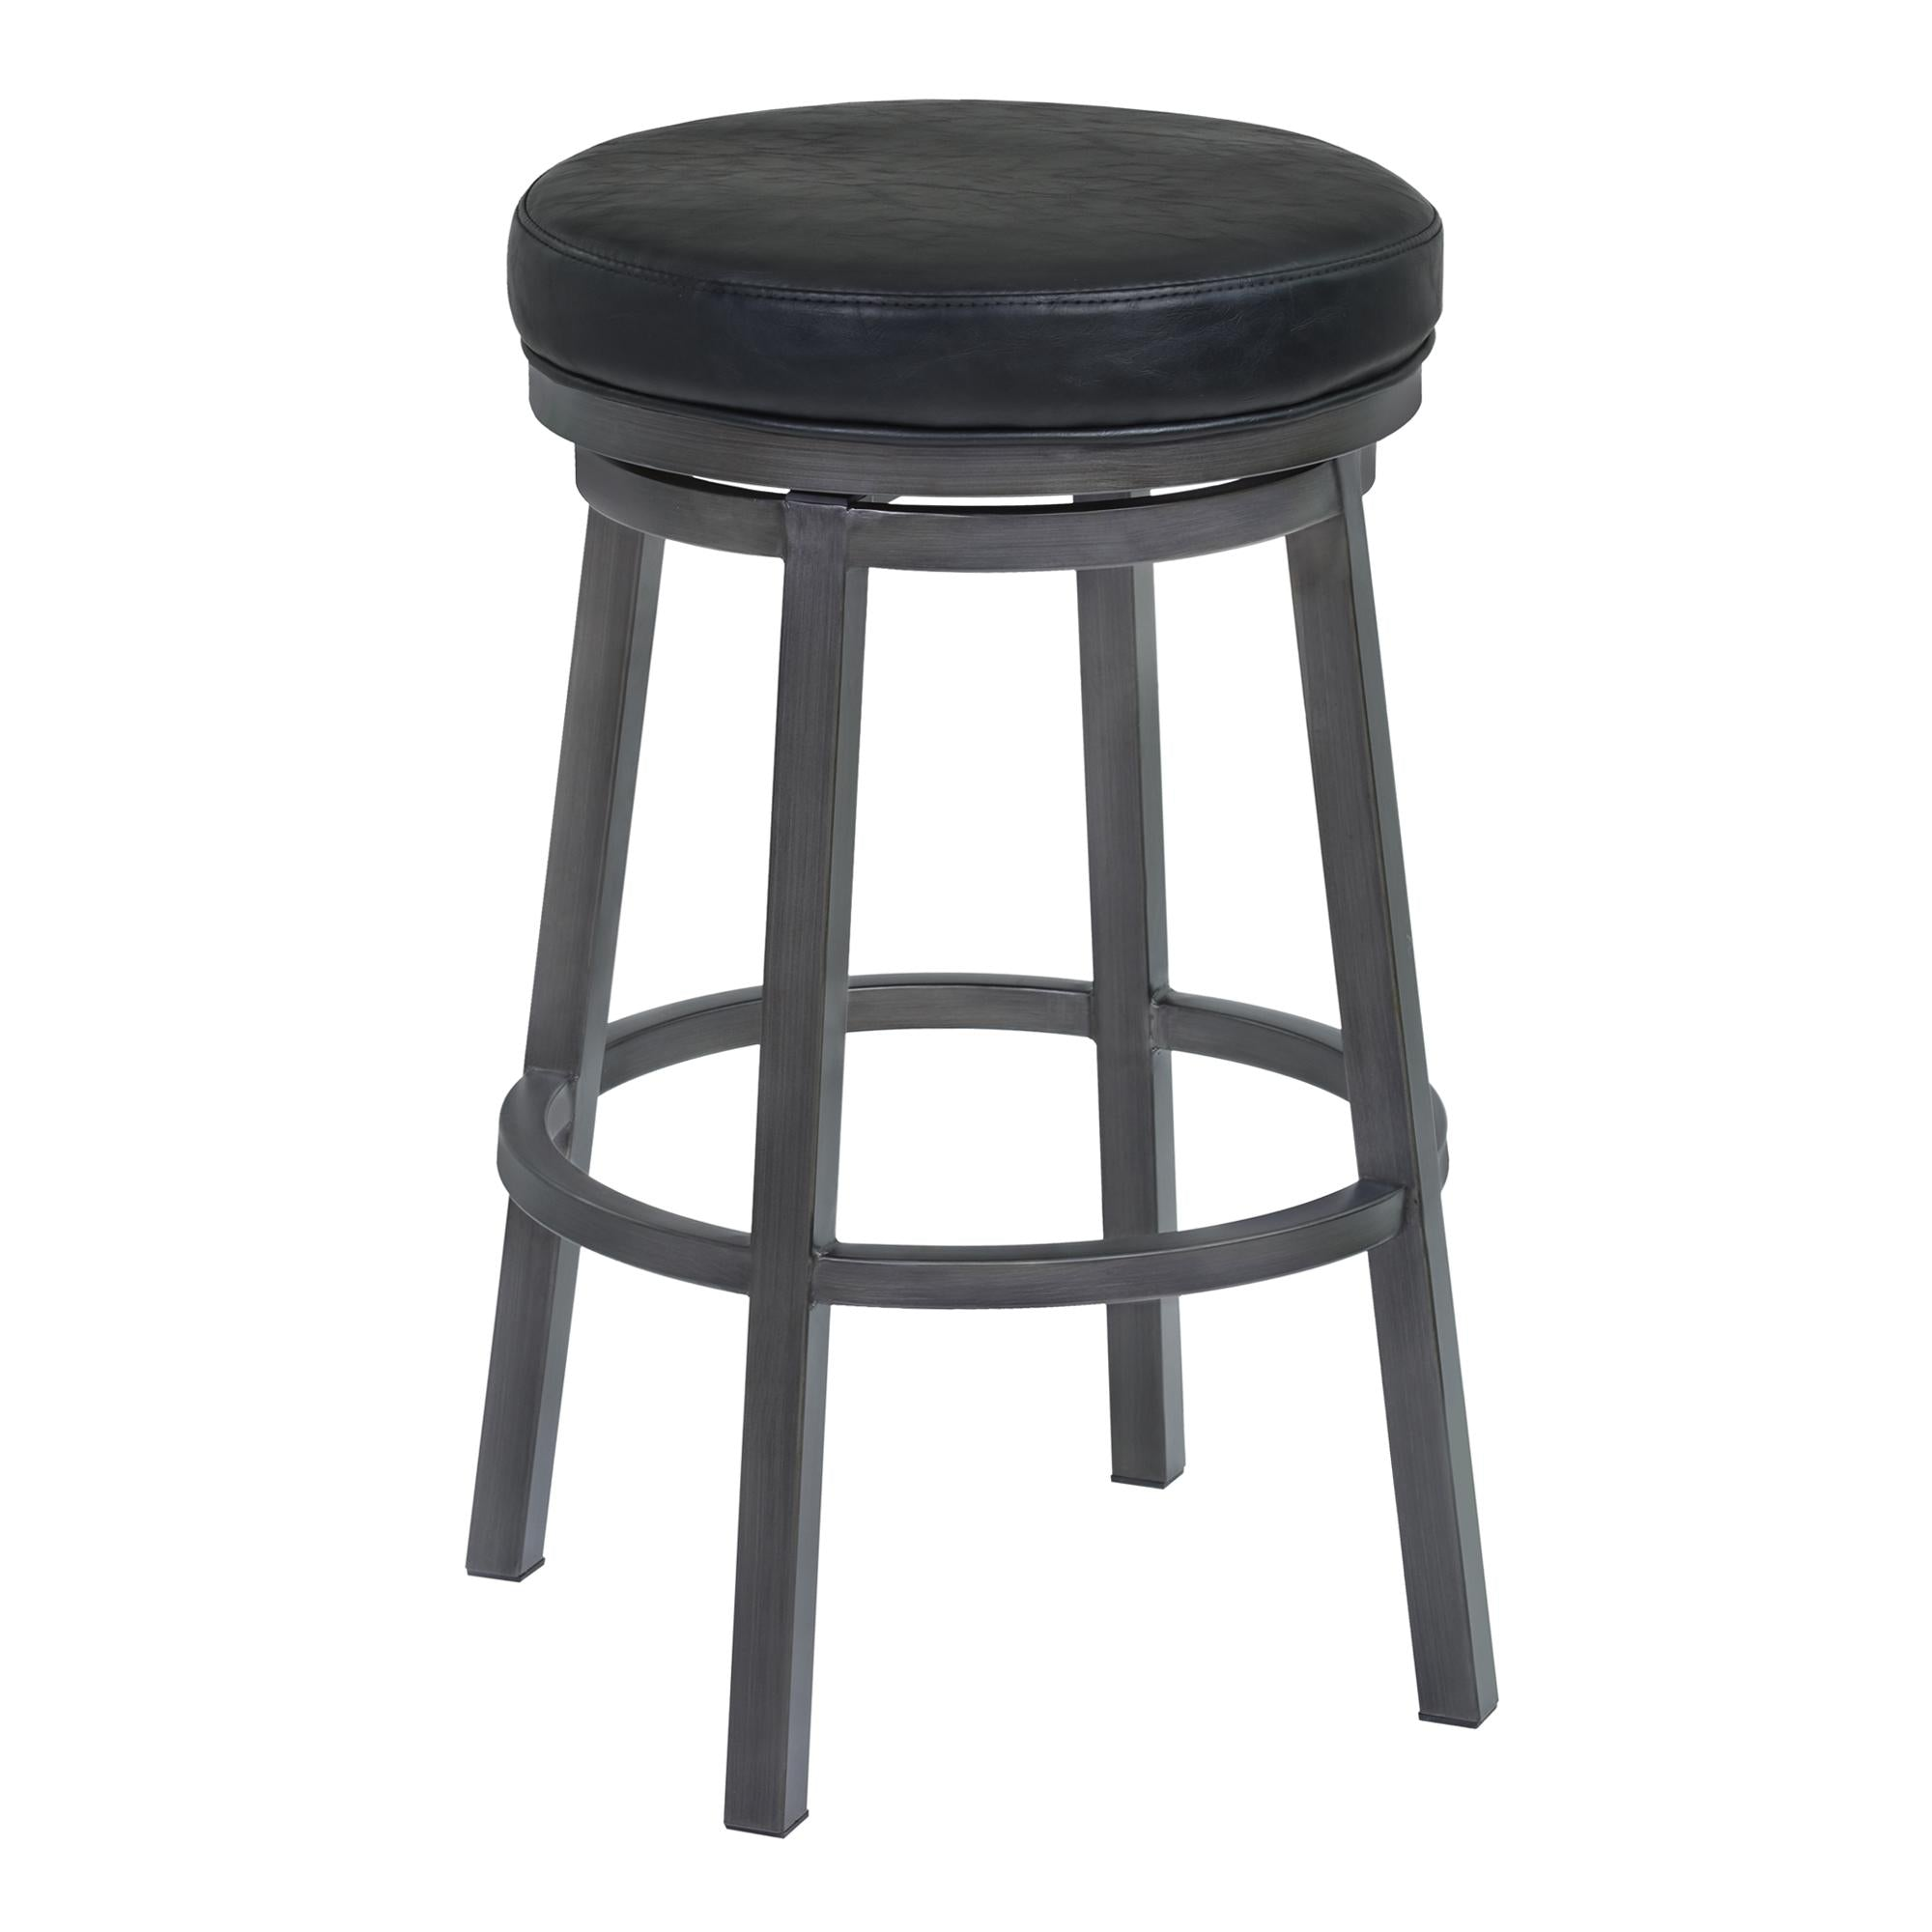 Armen Living Tilden 30' Bar Height Metal Swivel Backless Barstool in Ford Black Faux Leather and Mineral Finish